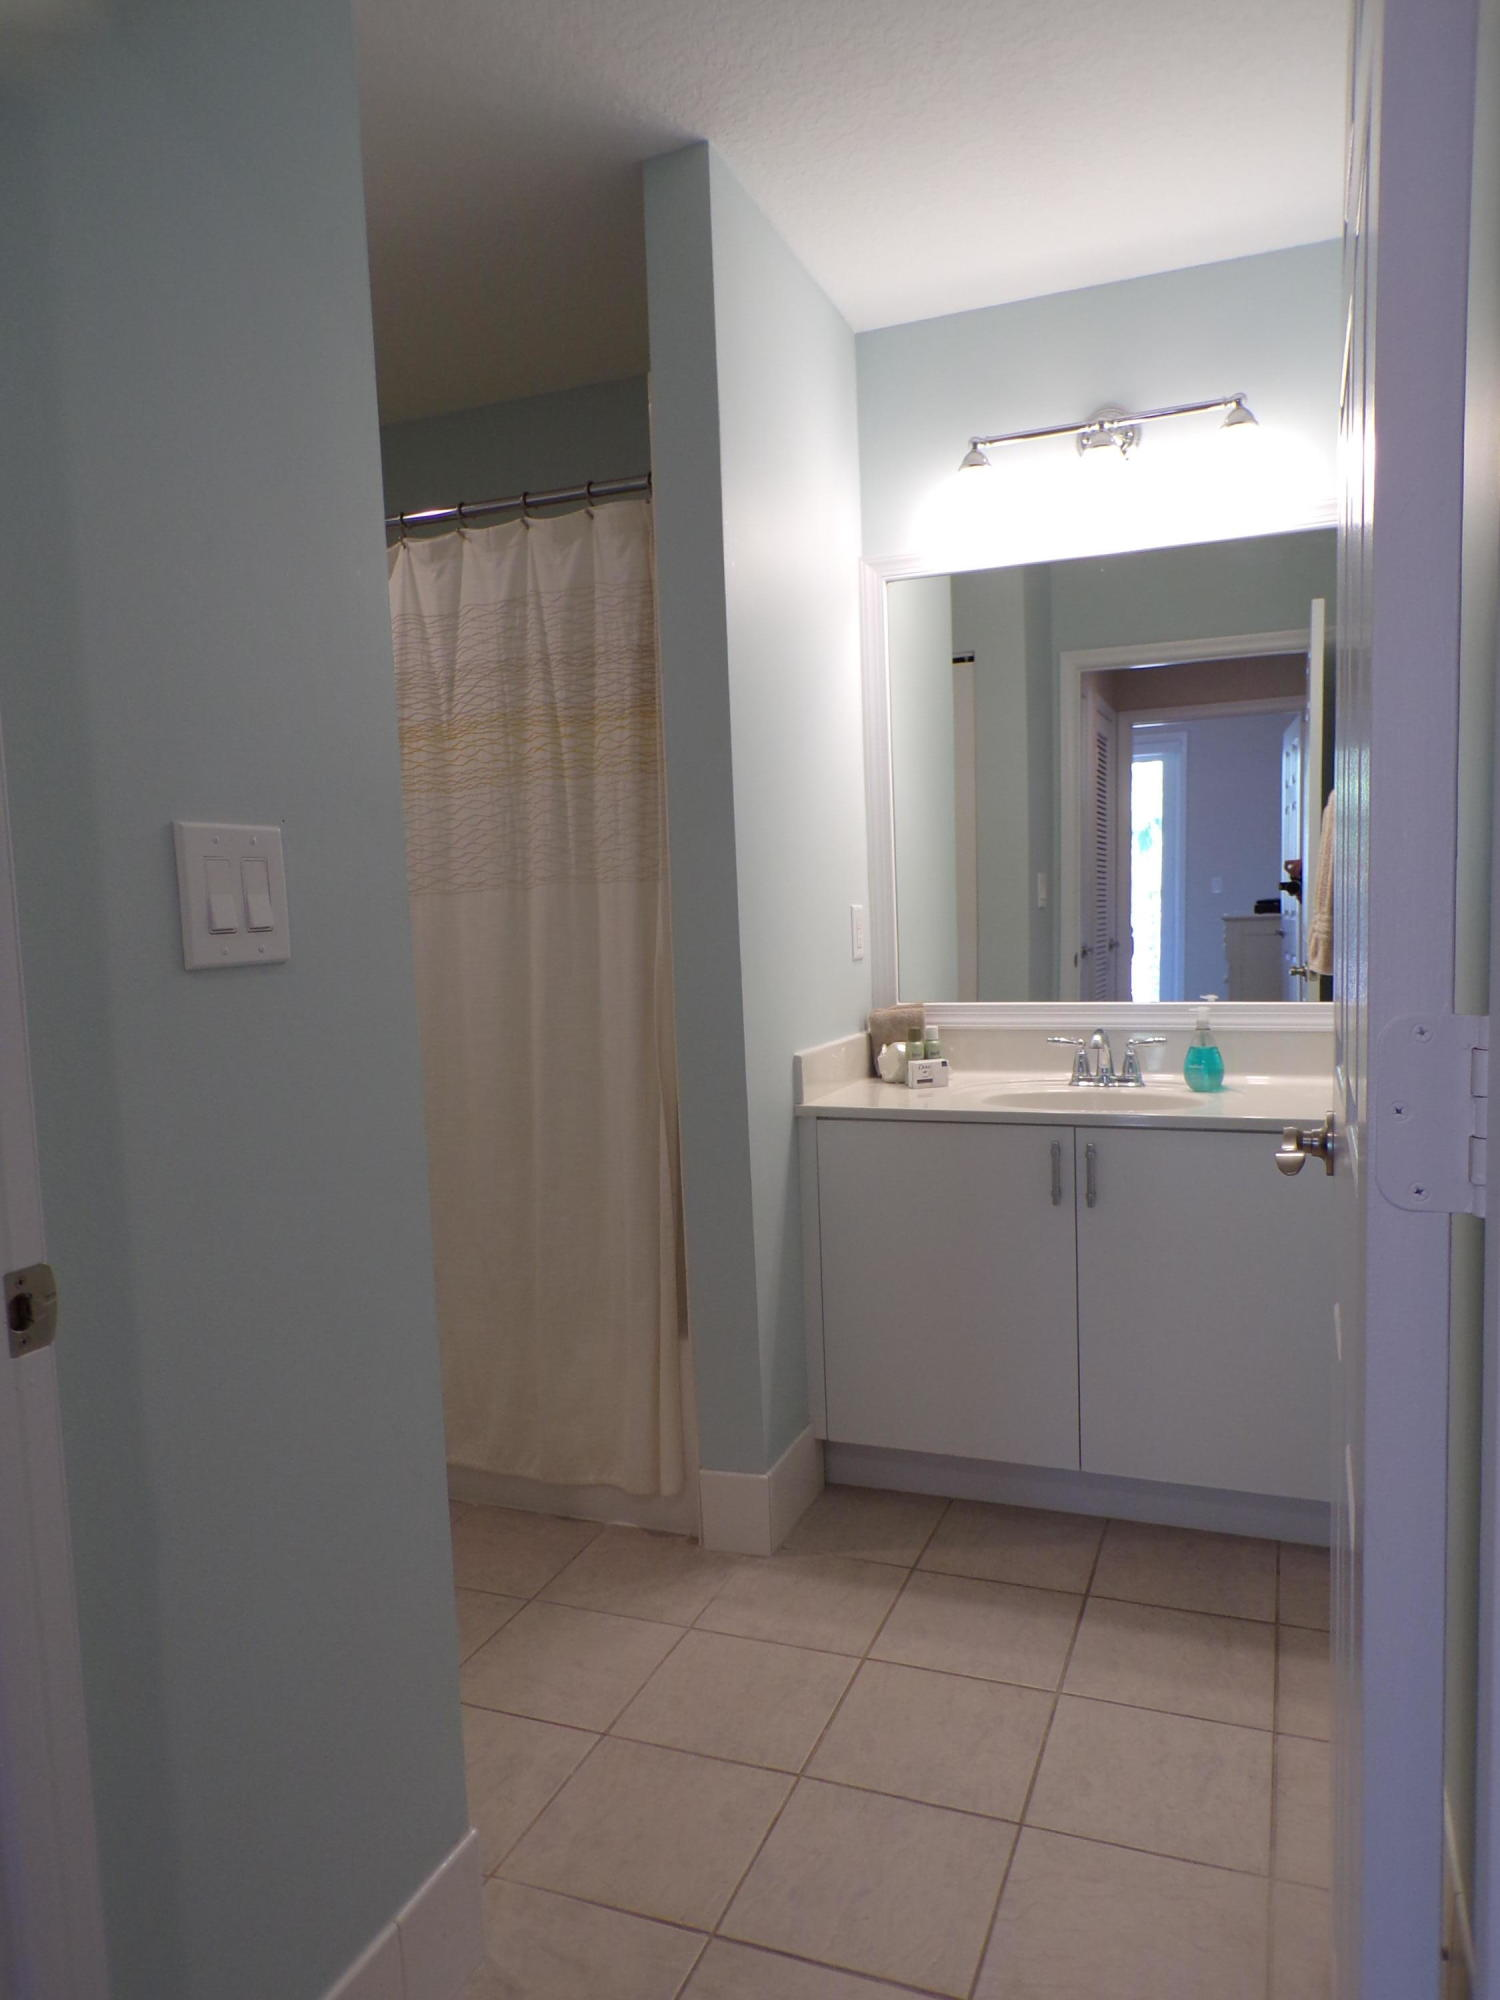 1203 Town Center Drive 313, Jupiter, Florida 33458, 2 Bedrooms Bedrooms, ,2 BathroomsBathrooms,A,Condominium,Town Center,RX-10498917